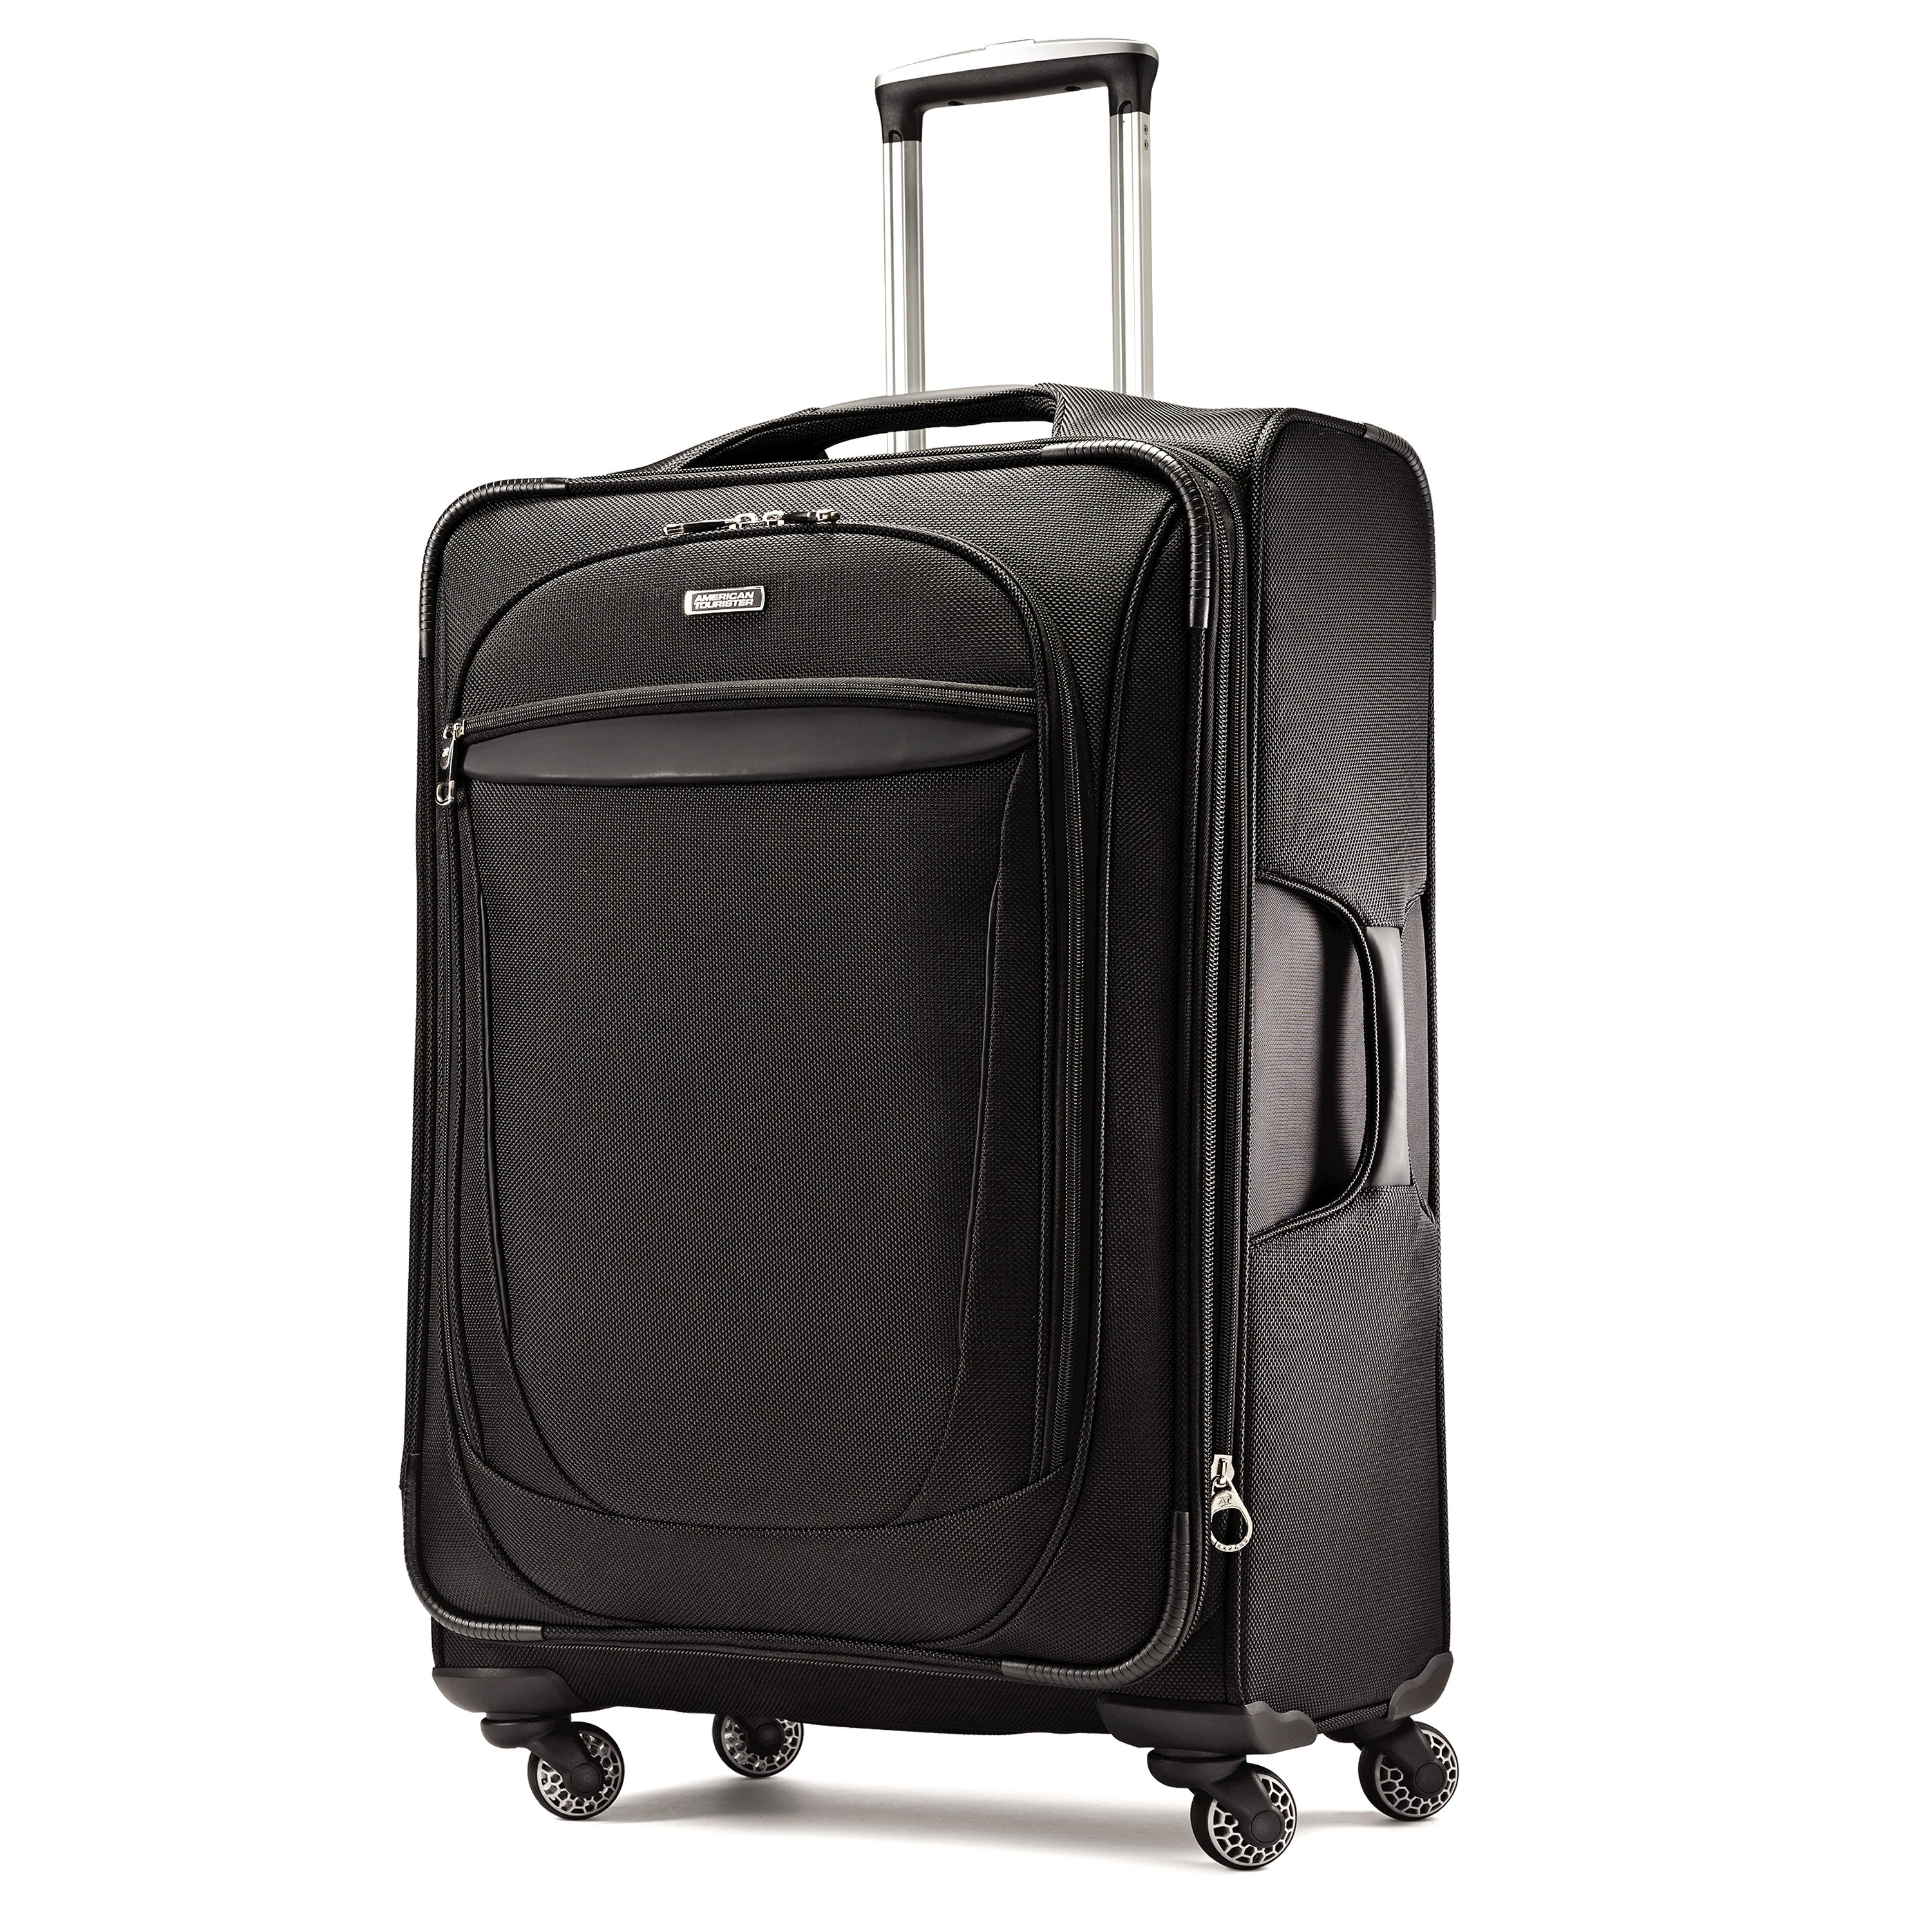 american tourister xlt spinner luggage ebay. Black Bedroom Furniture Sets. Home Design Ideas